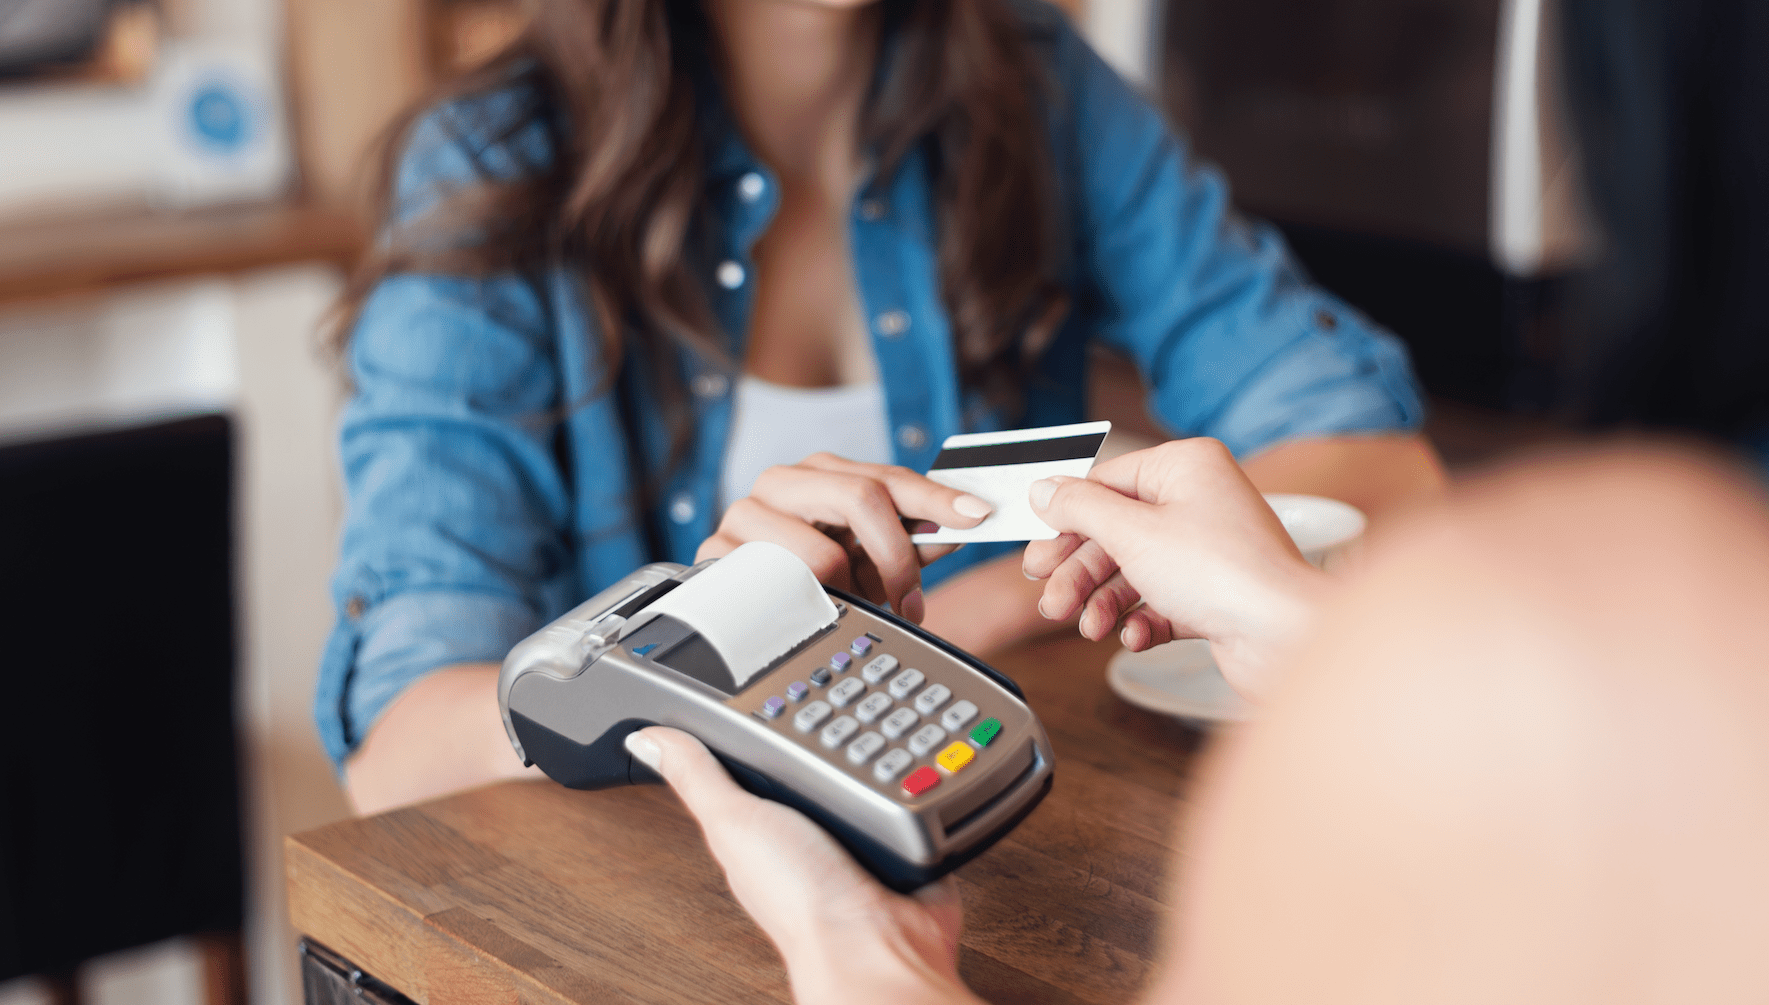 Woman Making In-Person Credit Card Payment